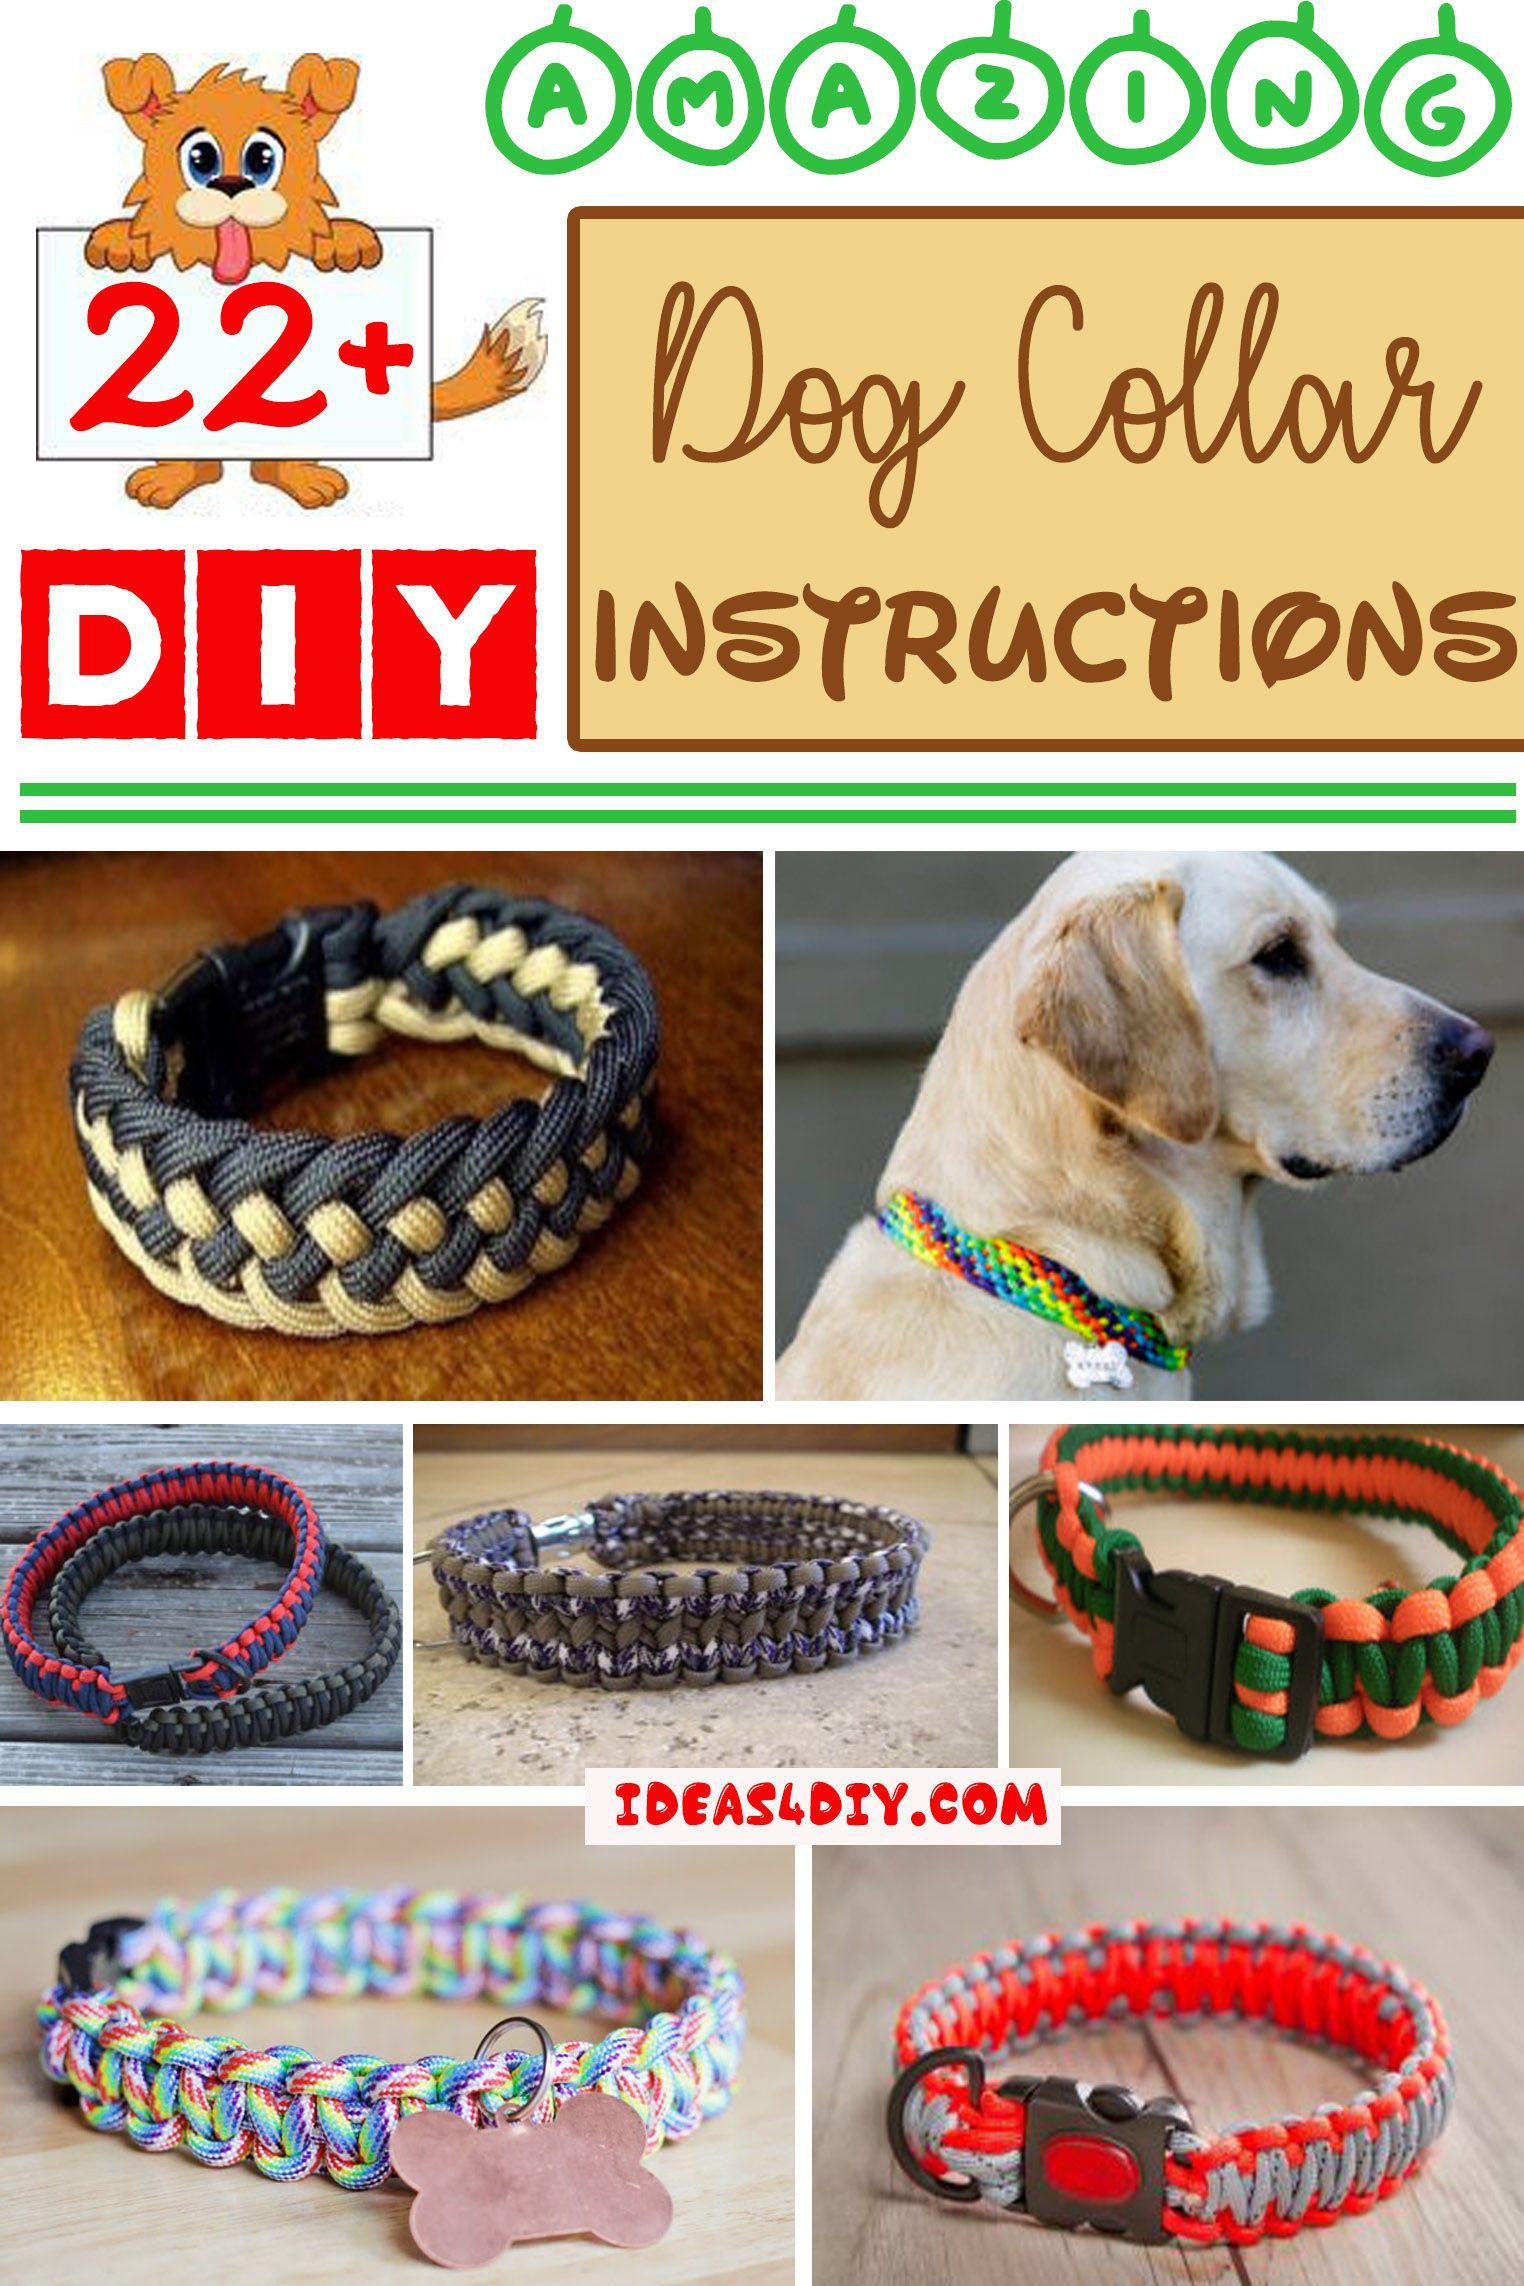 how to make a dog collar with paracord